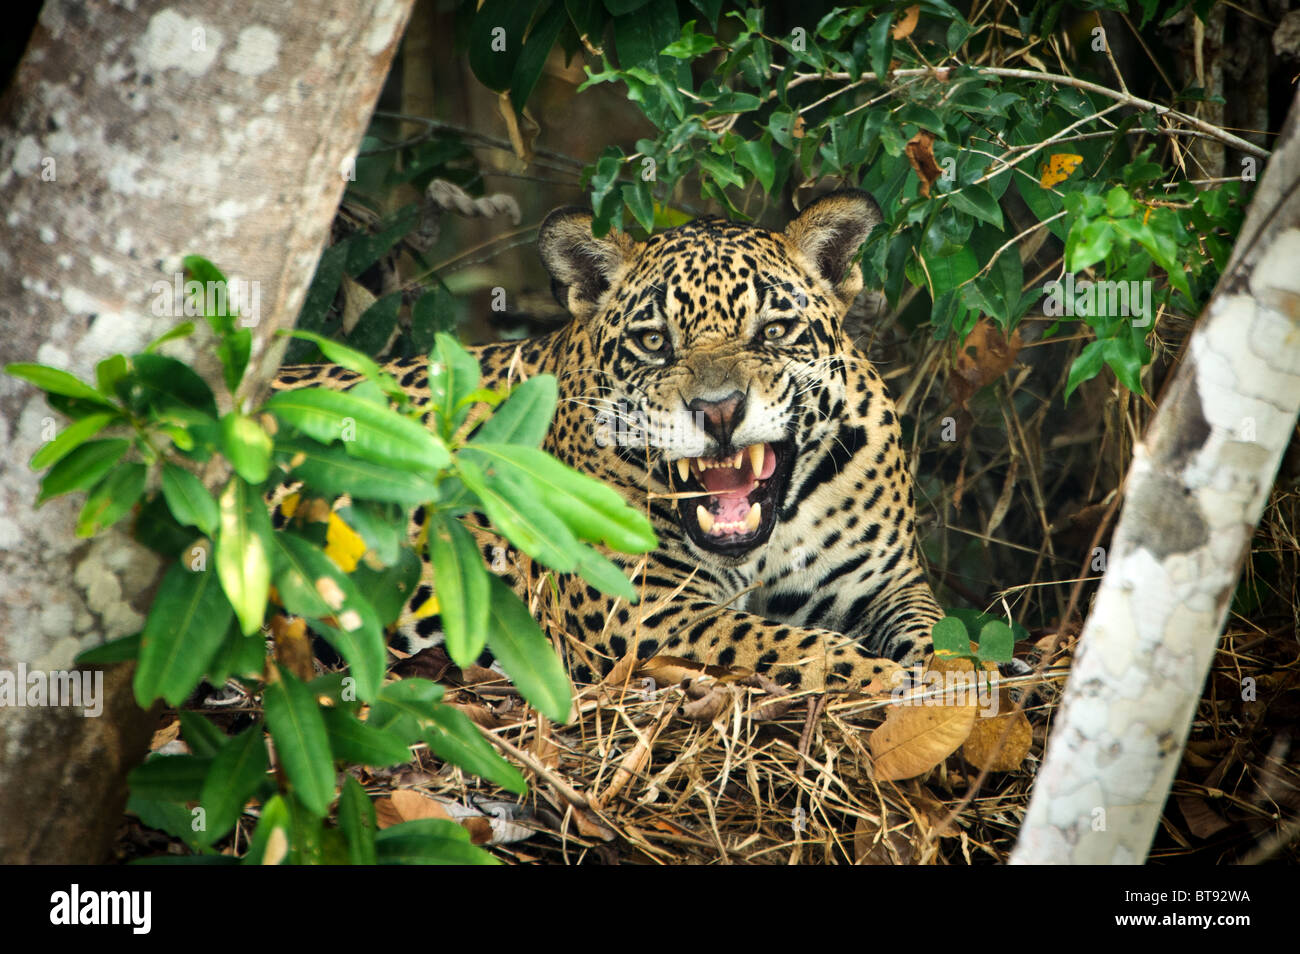 Wild Jaguar in the Pantanal - Stock Image